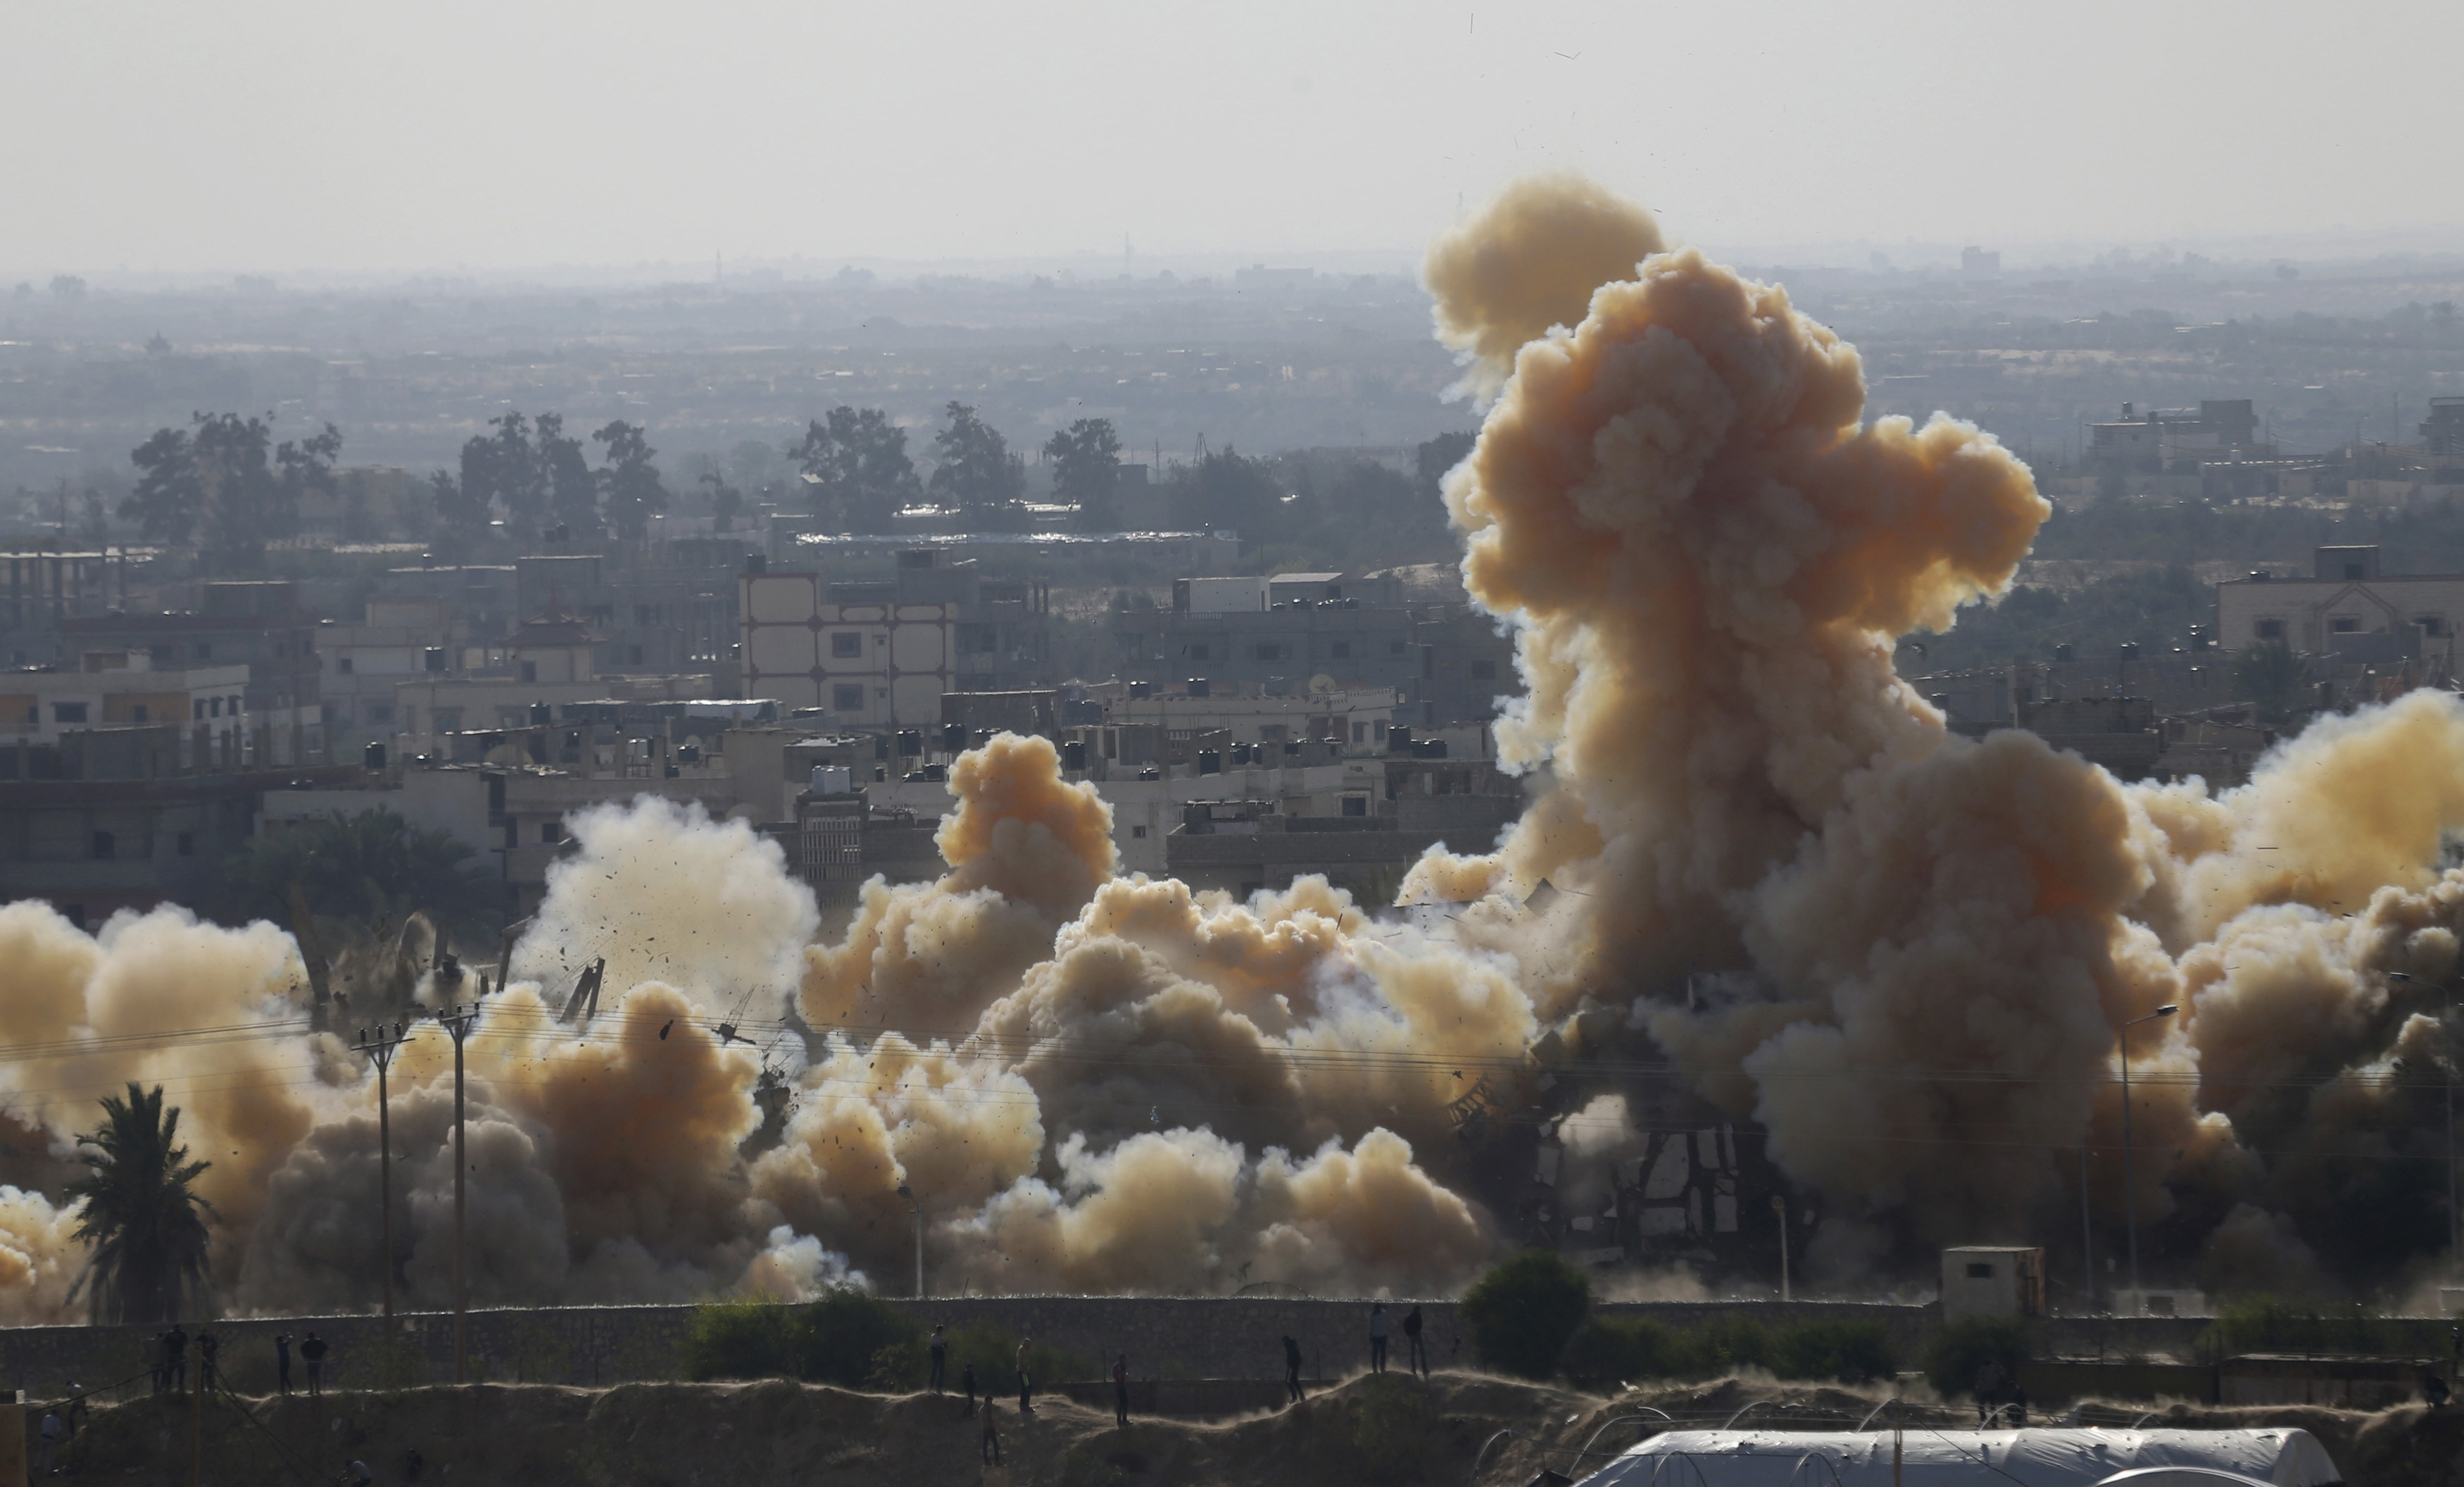 Smoke rises as a house is blown up during a military operation by Egyptian security forces in the Egyptian city of Rafah, near the border with southern Gaza Strip November 3, 2014. REUTERS/Ibraheem Abu Mustafa (GAZA - Tags: POLITICS CIVIL UNREST)